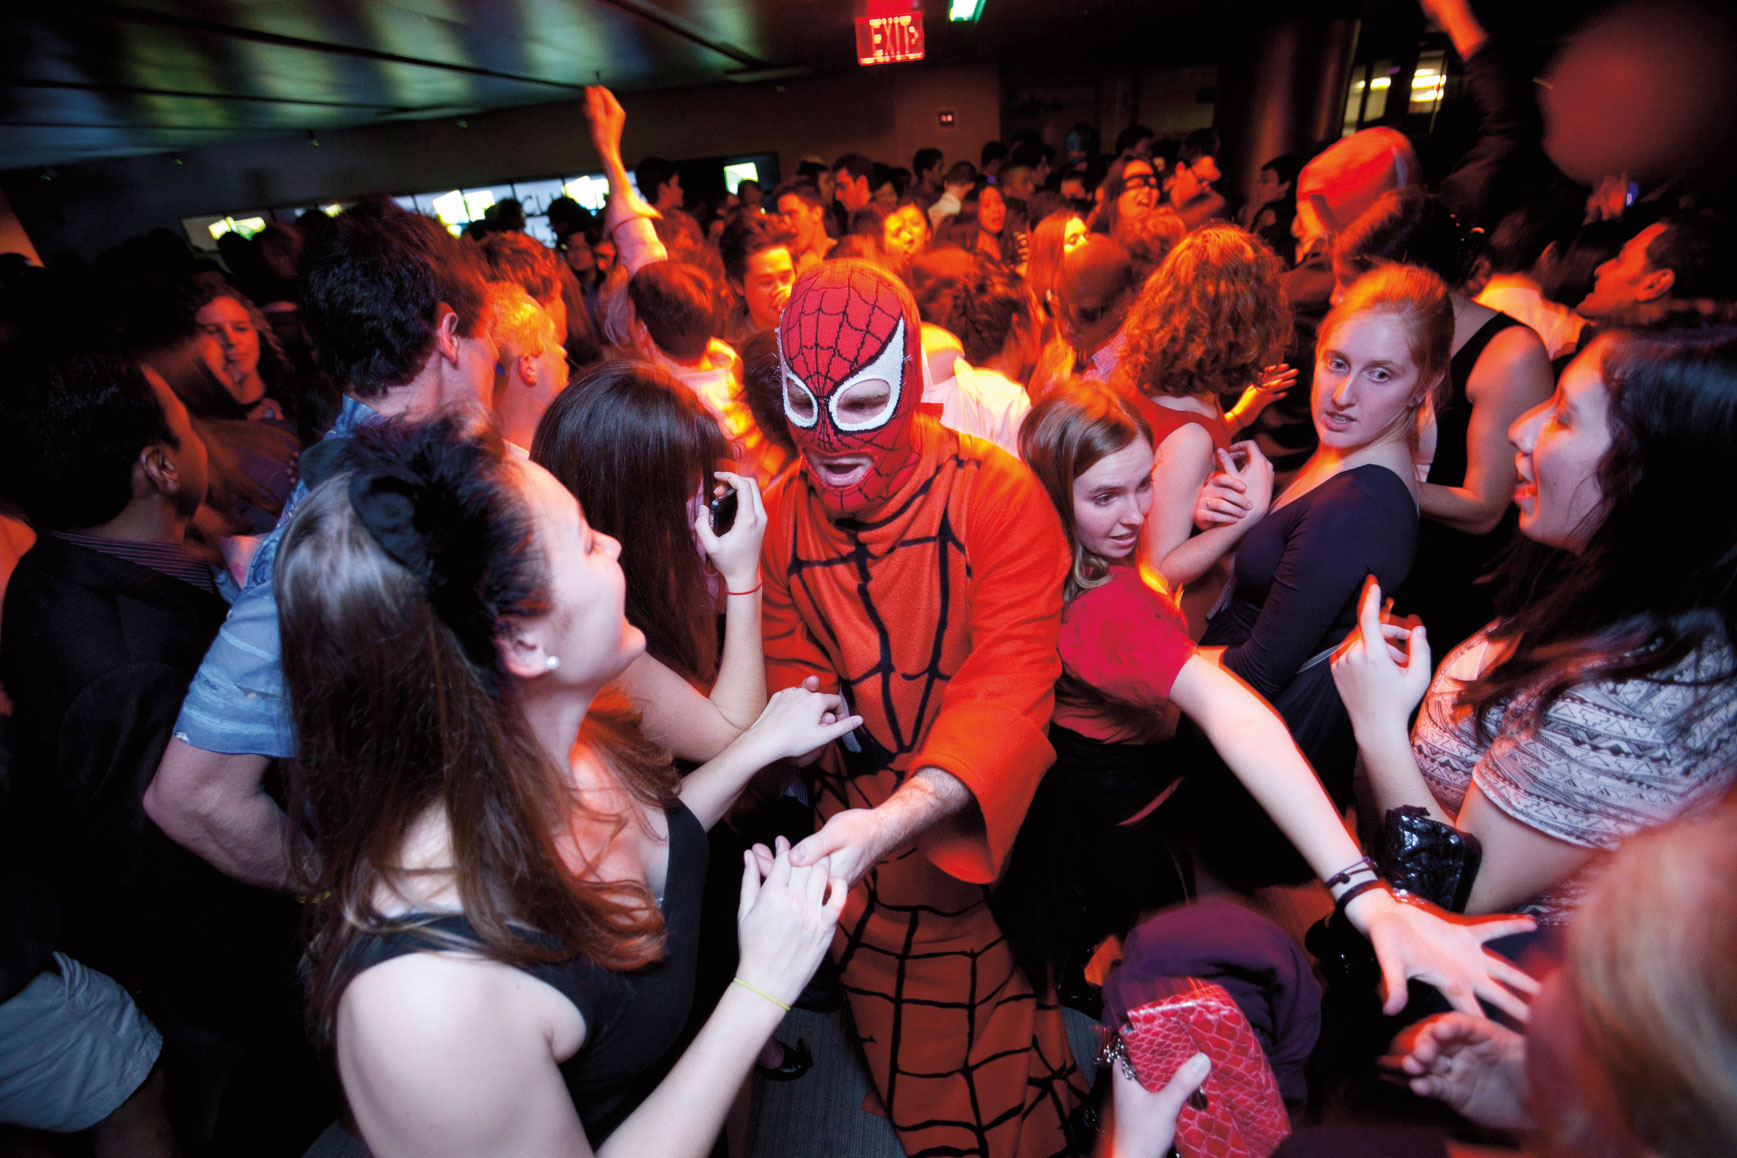 Spidey senses: Masked avengers and caped crusaders overtake Perkins Library for its annual party. [Credit: Megan Morr]